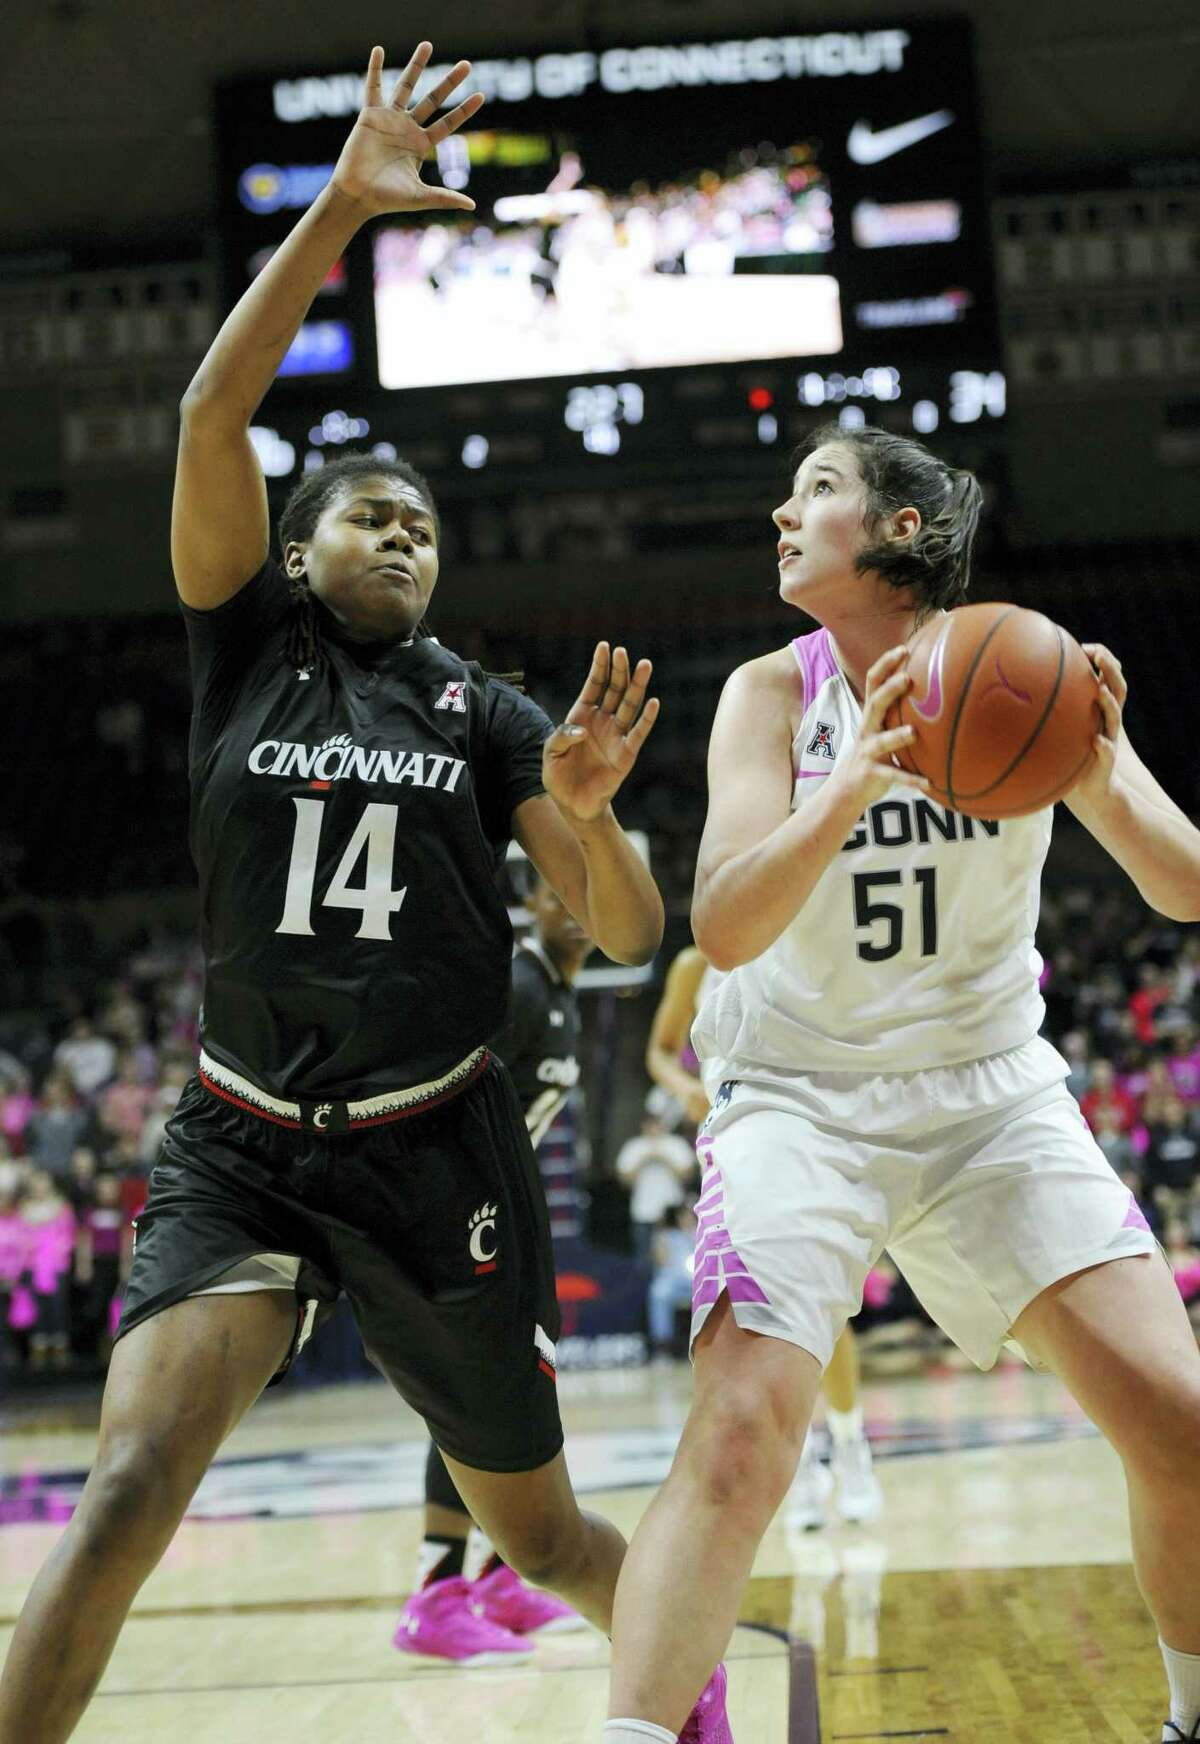 UConn's Natalie Butler finished with a double-double in her first start with the Huskies.